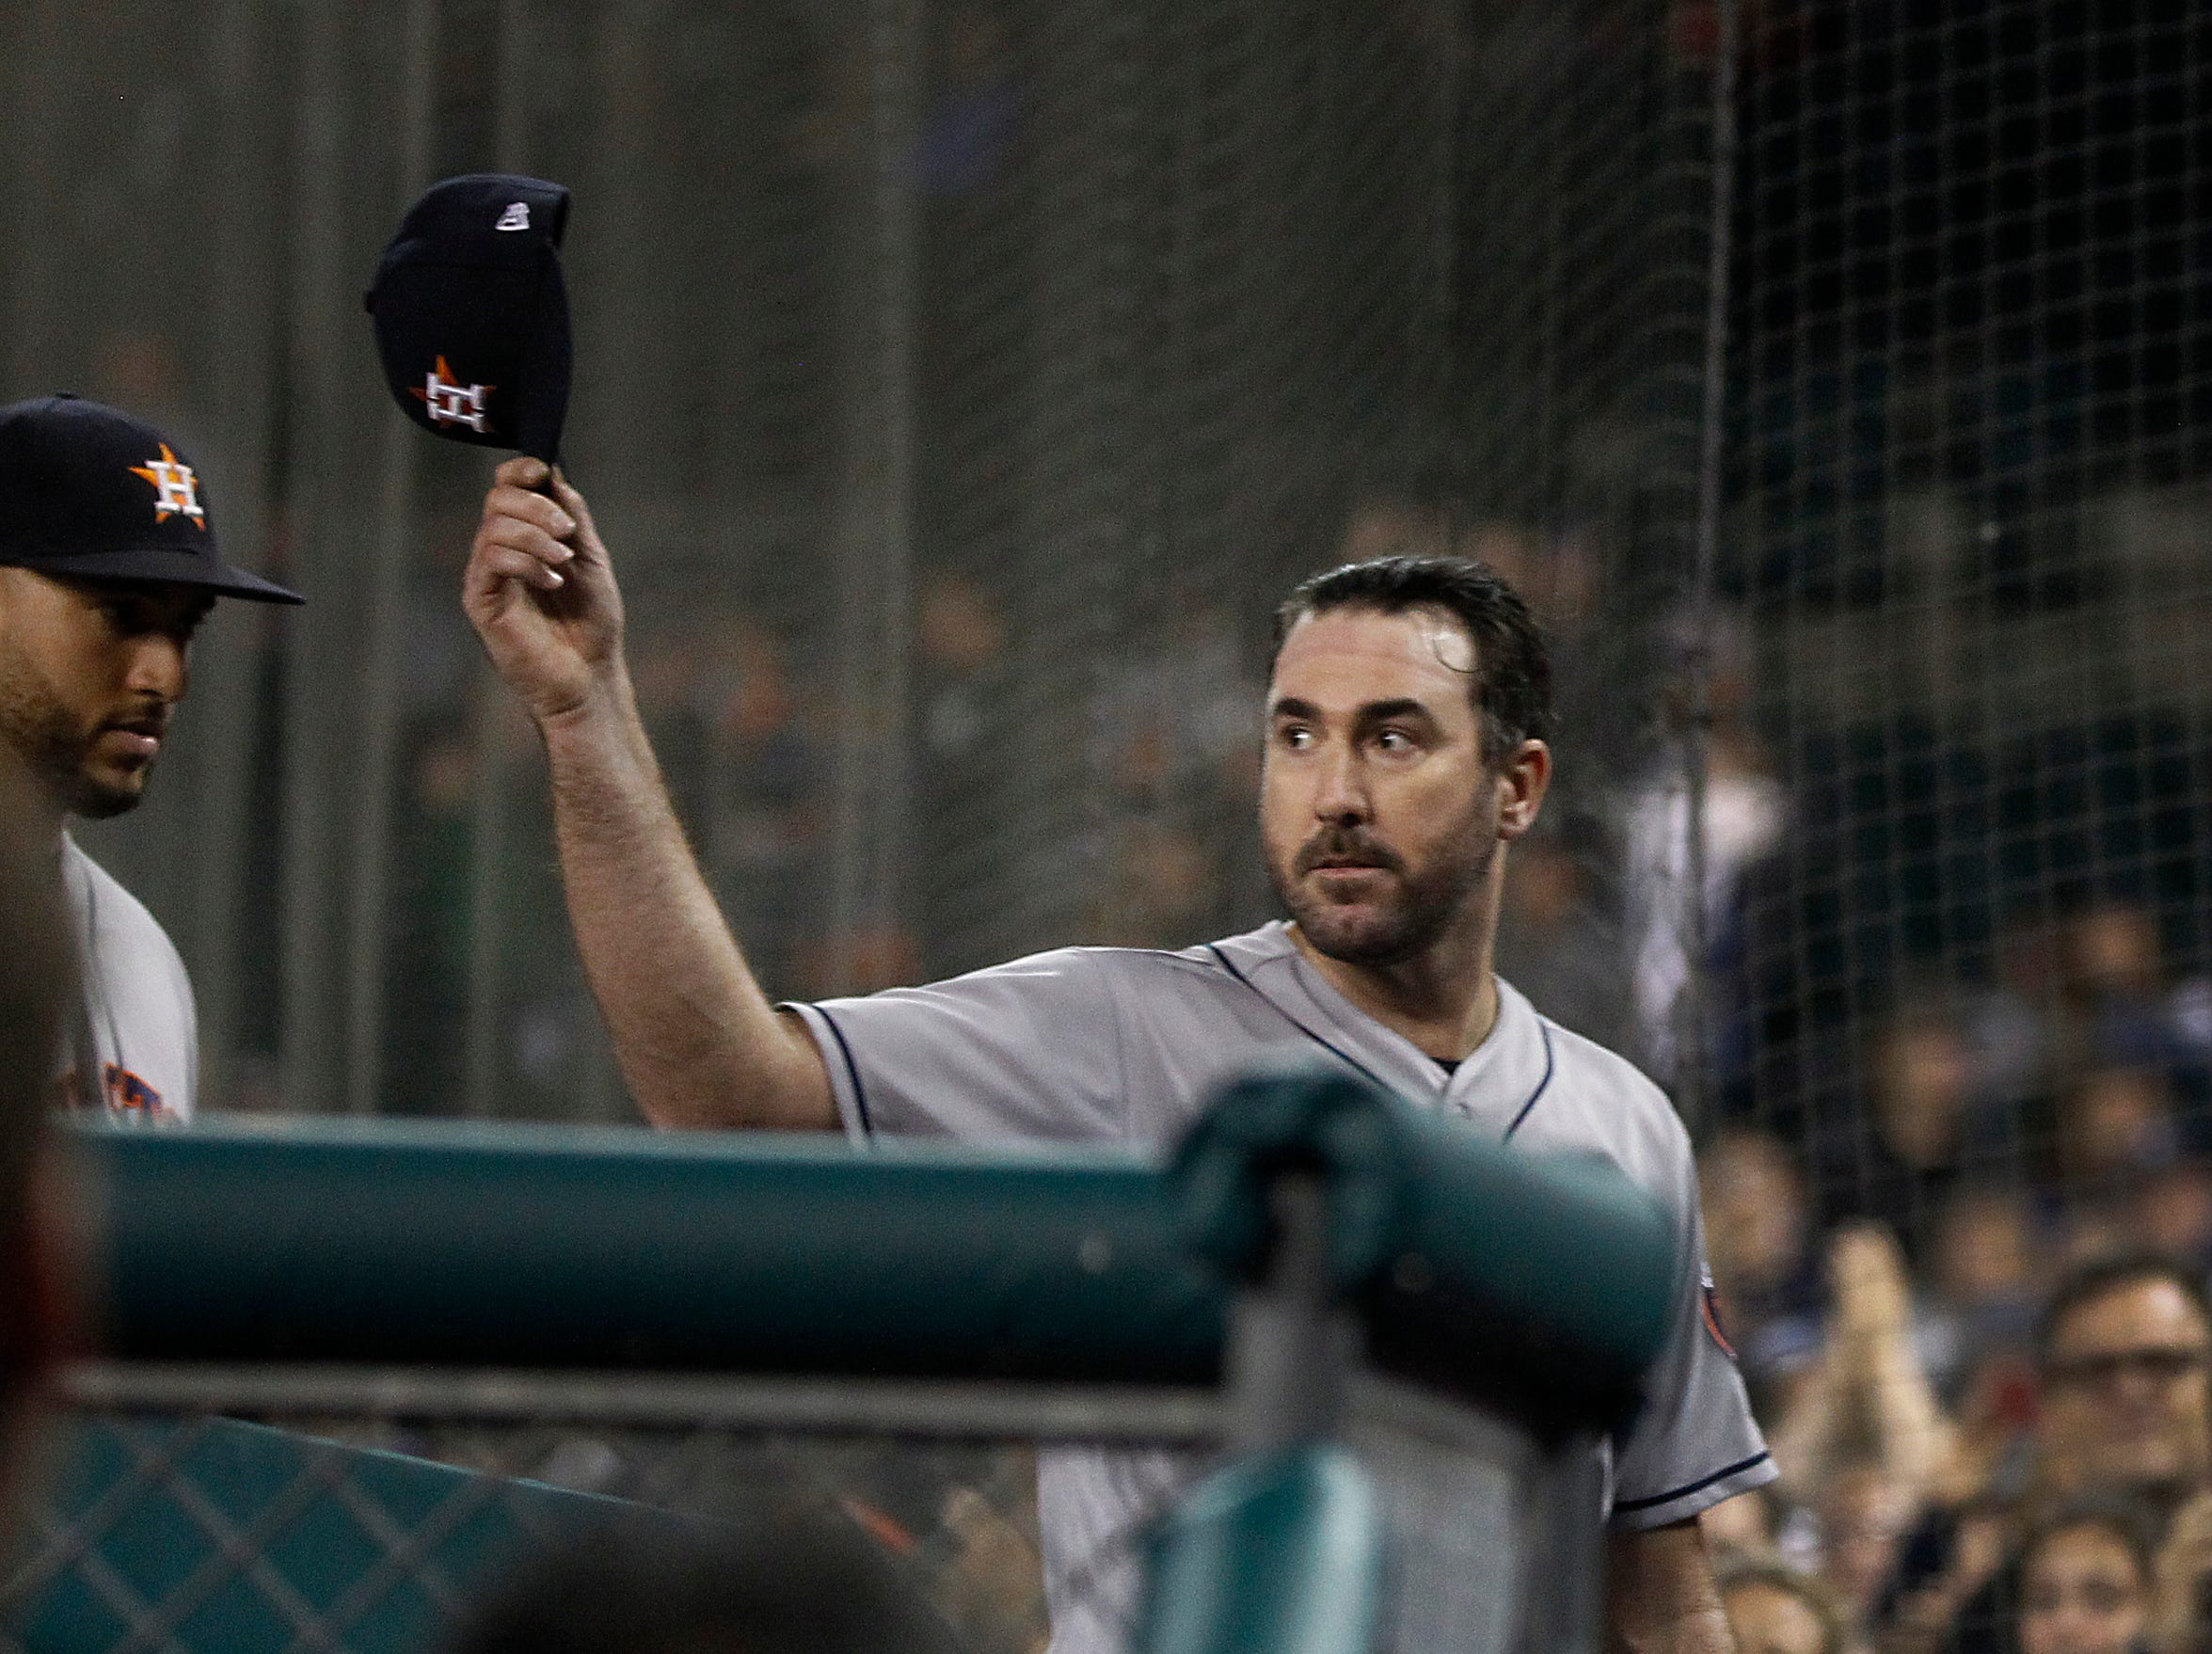 Houston Astros starting pitcher Justin Verlander (35) tips his cap as he finishes the pitching in the seventh inning as the Detroit Tigers take on the Houston Astros Monday, Sept. 10, 2018 at Comerica Park in Detroit.